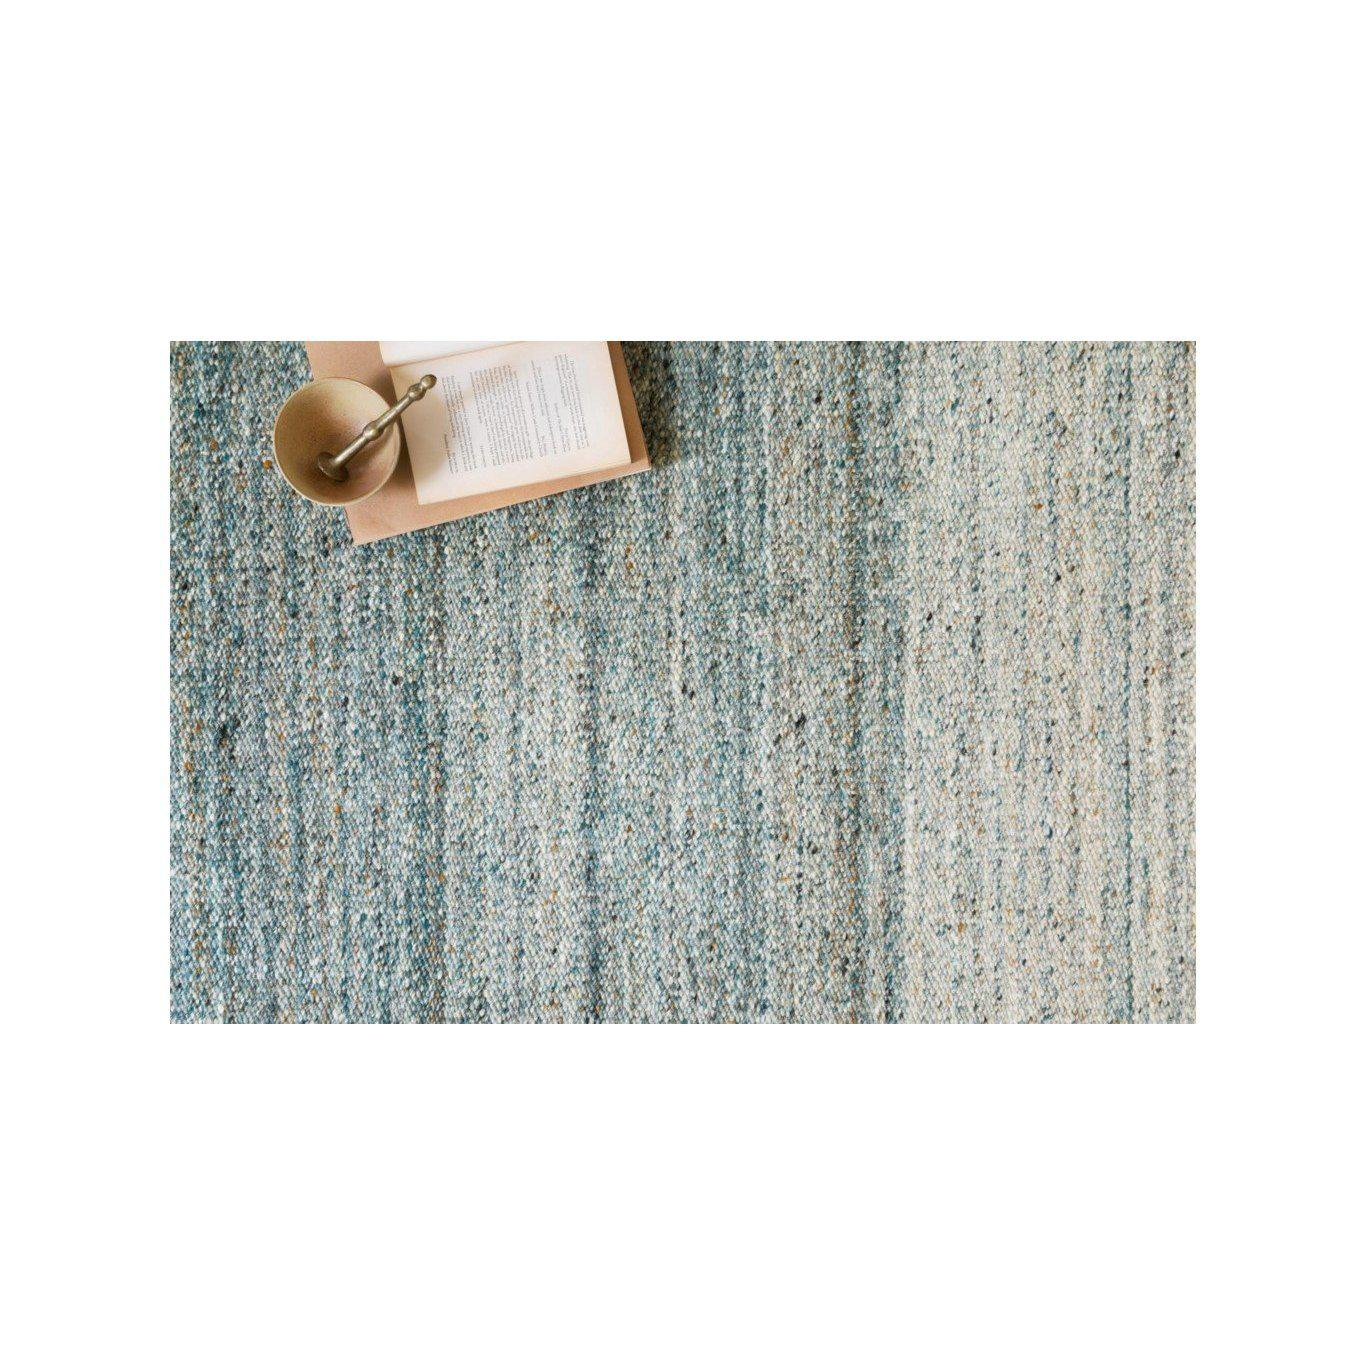 Joanna Gaines Phillip Rug Collection - PK-01 Turquoise-Loloi Rugs-Blue Hand Home